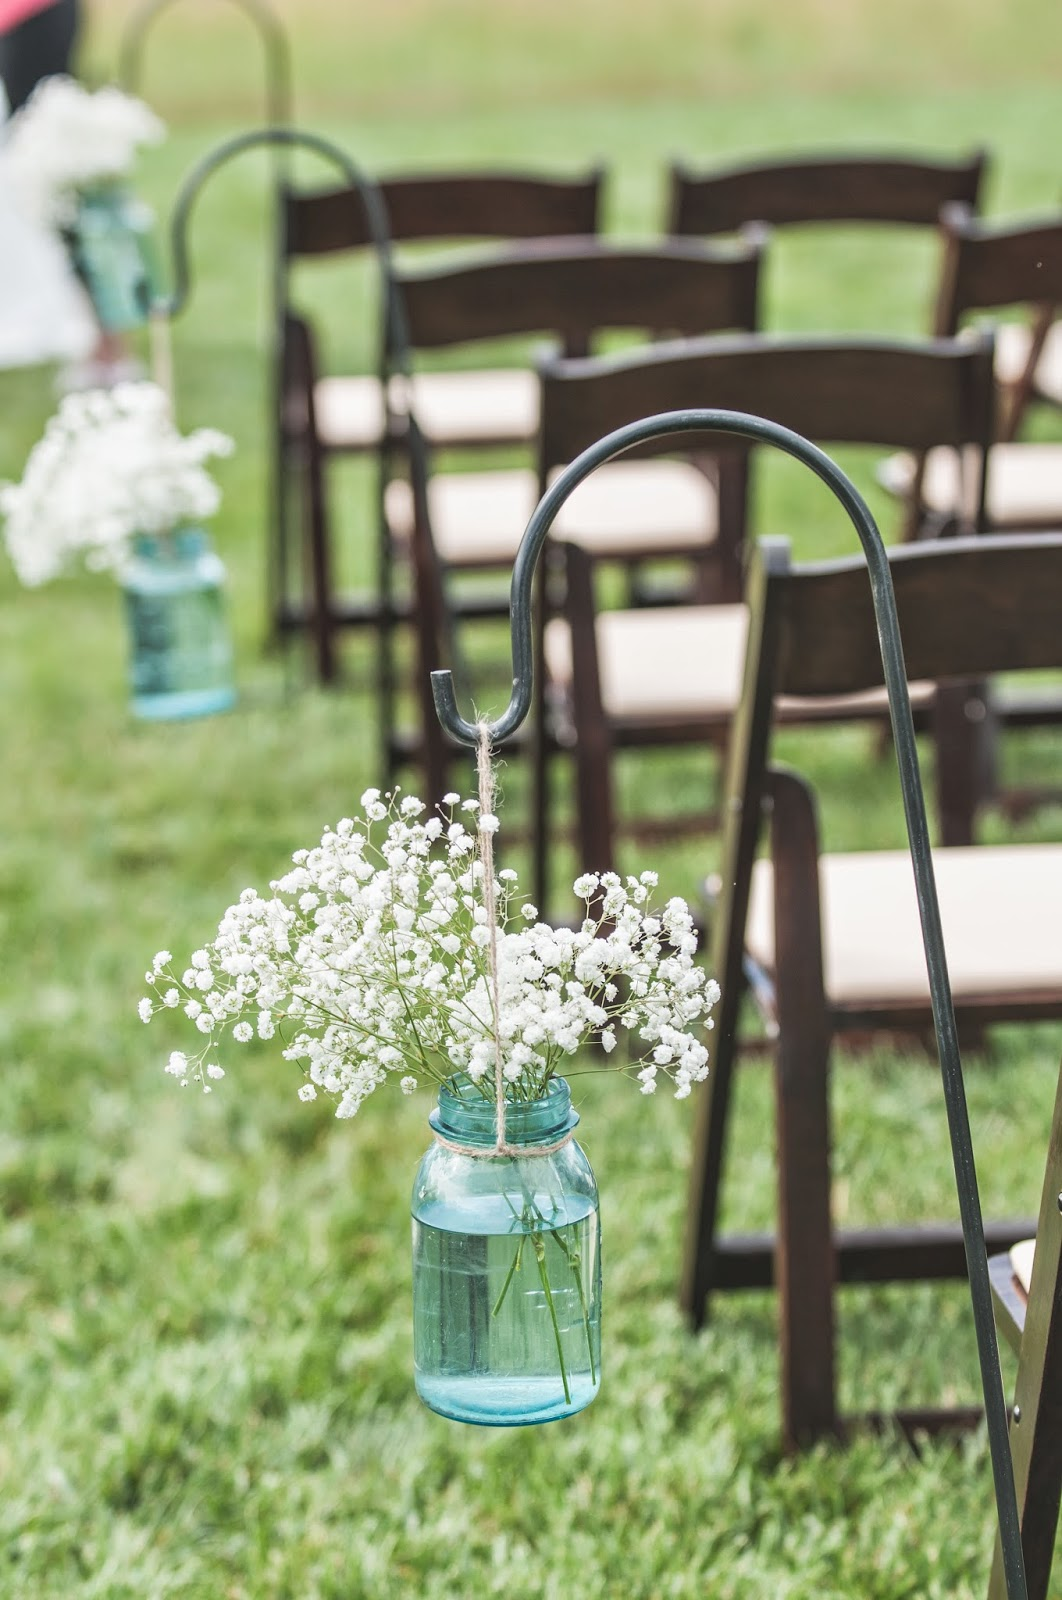 shepherd hook baby's breath for aisle liner in outdoor wedding ceremony